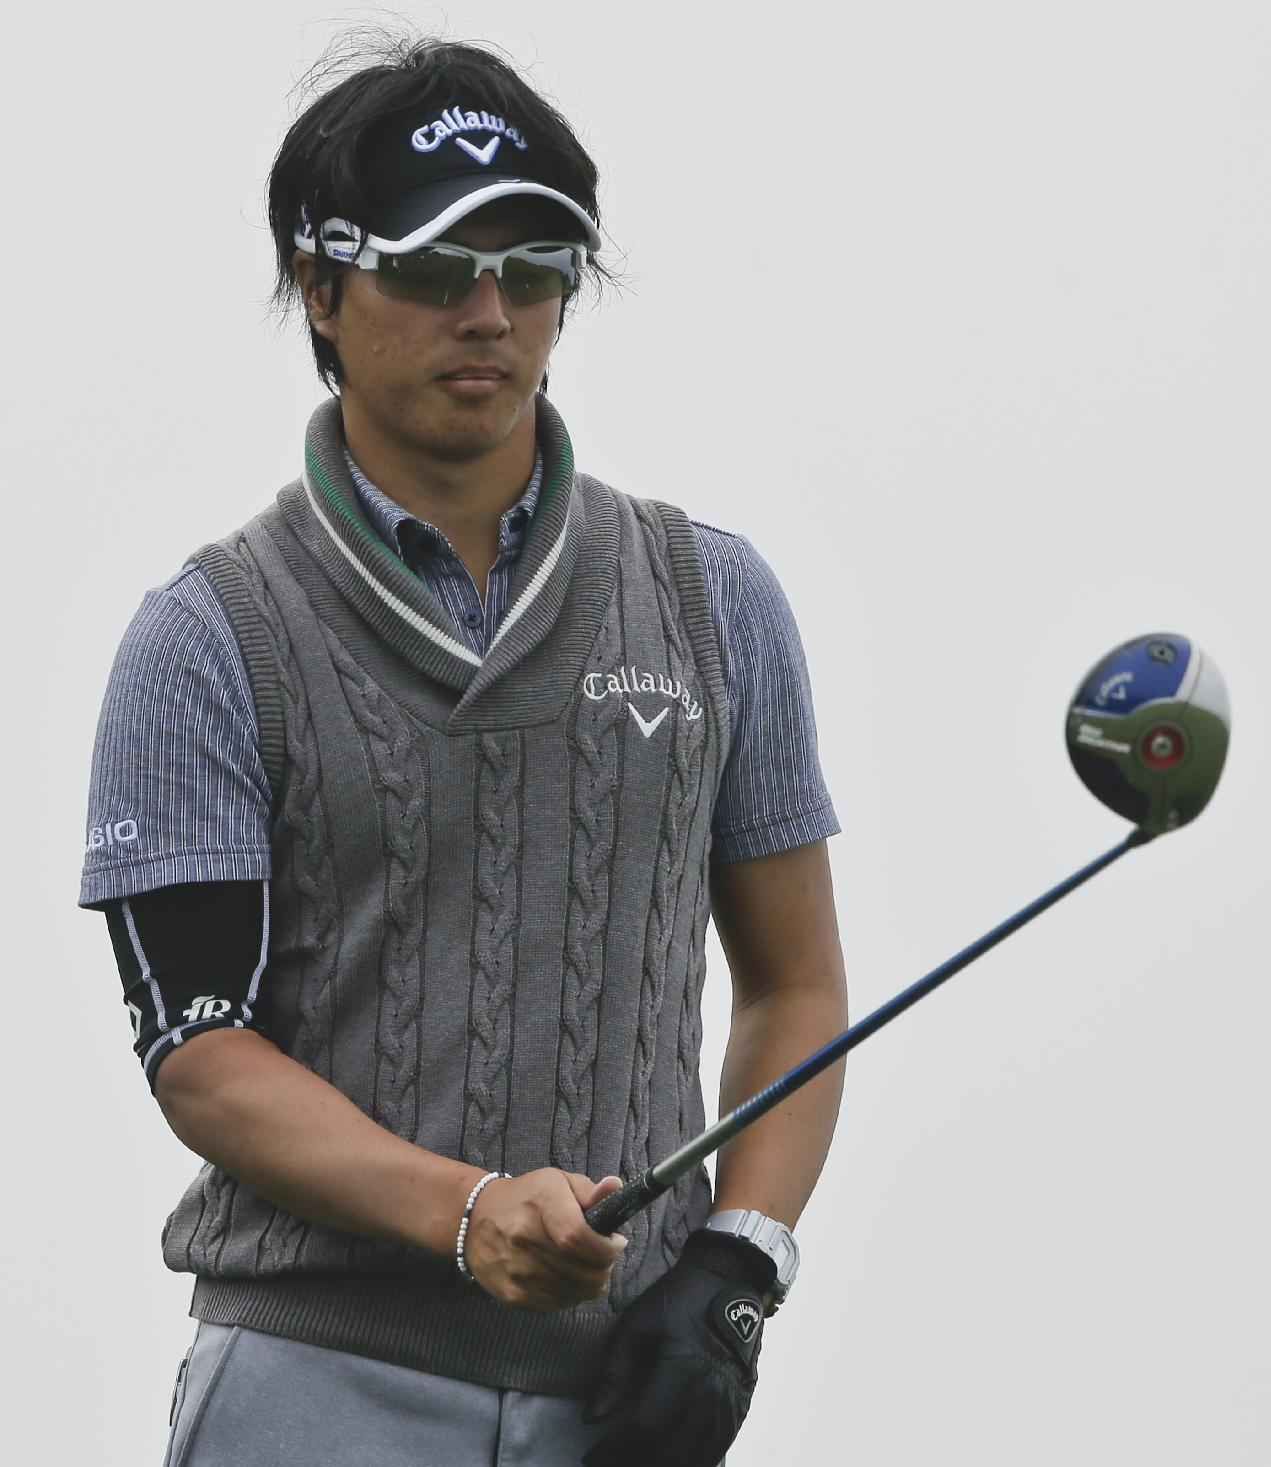 Ryo Ishikawa, of Japan, lines up his tee shot on 4th hole of the South Course at Torrey Pines during the final round of the Farmers Insurance Open golf tournament Sunday, Jan. 26, 2014, in San Diego